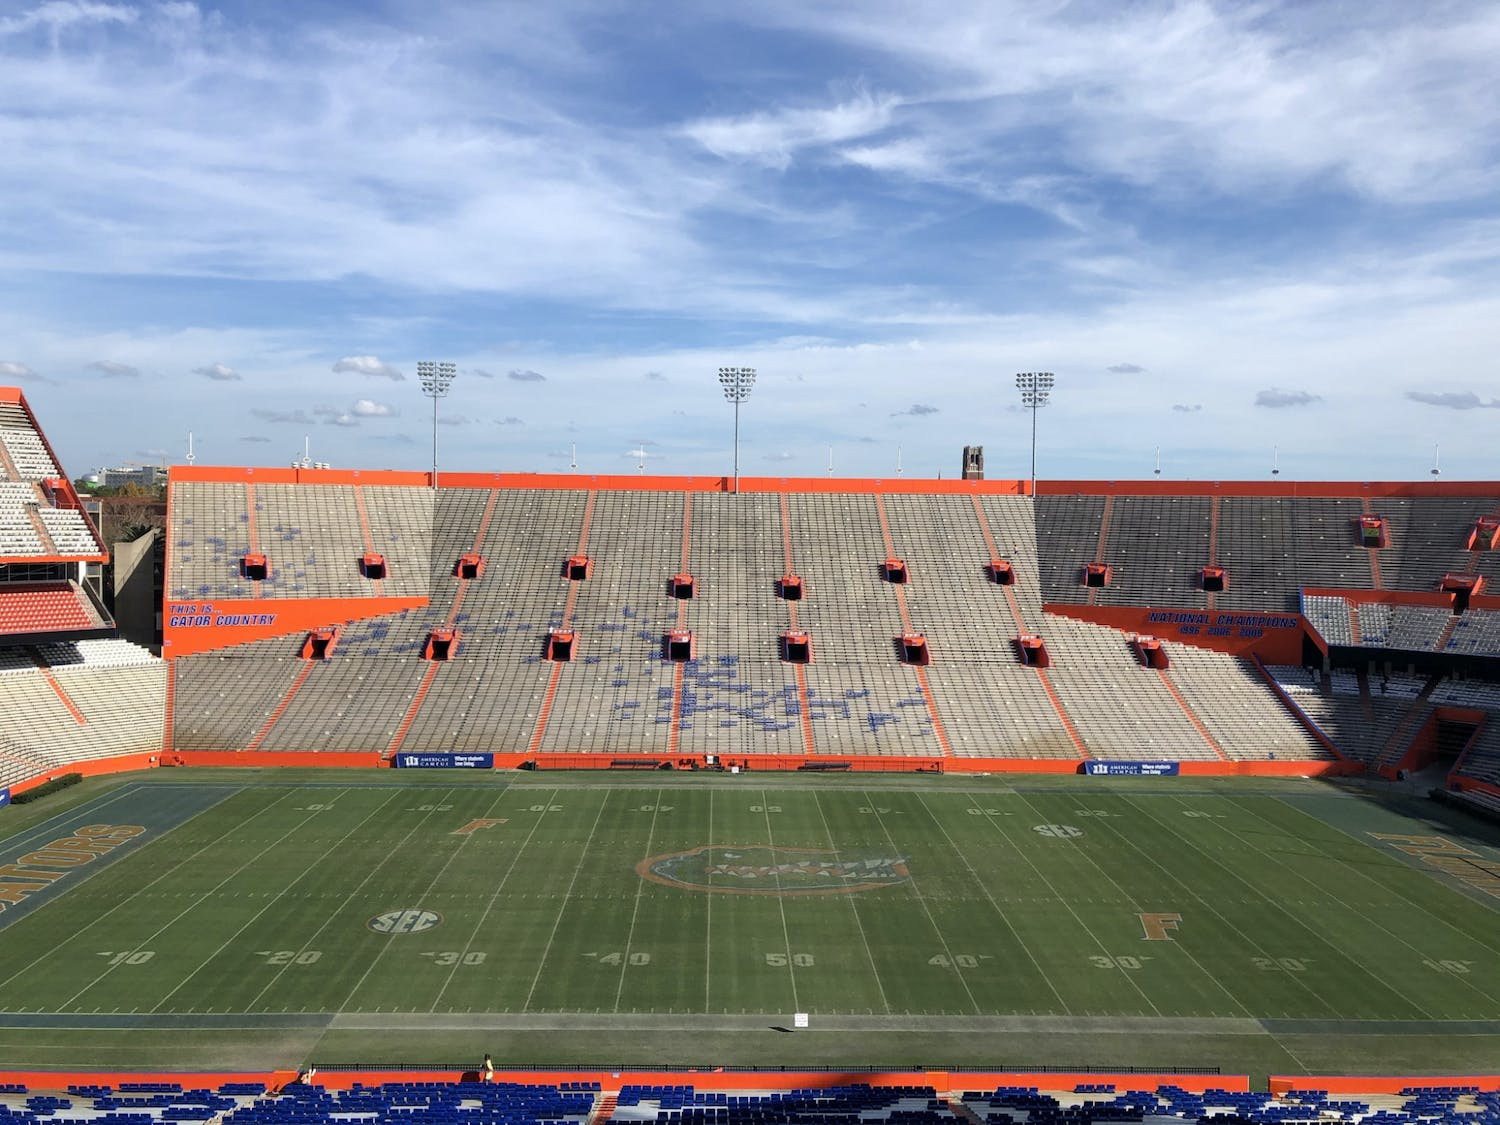 Florida football fielded its second commit in two days with three-star OT David Conner on Tuesday evening.